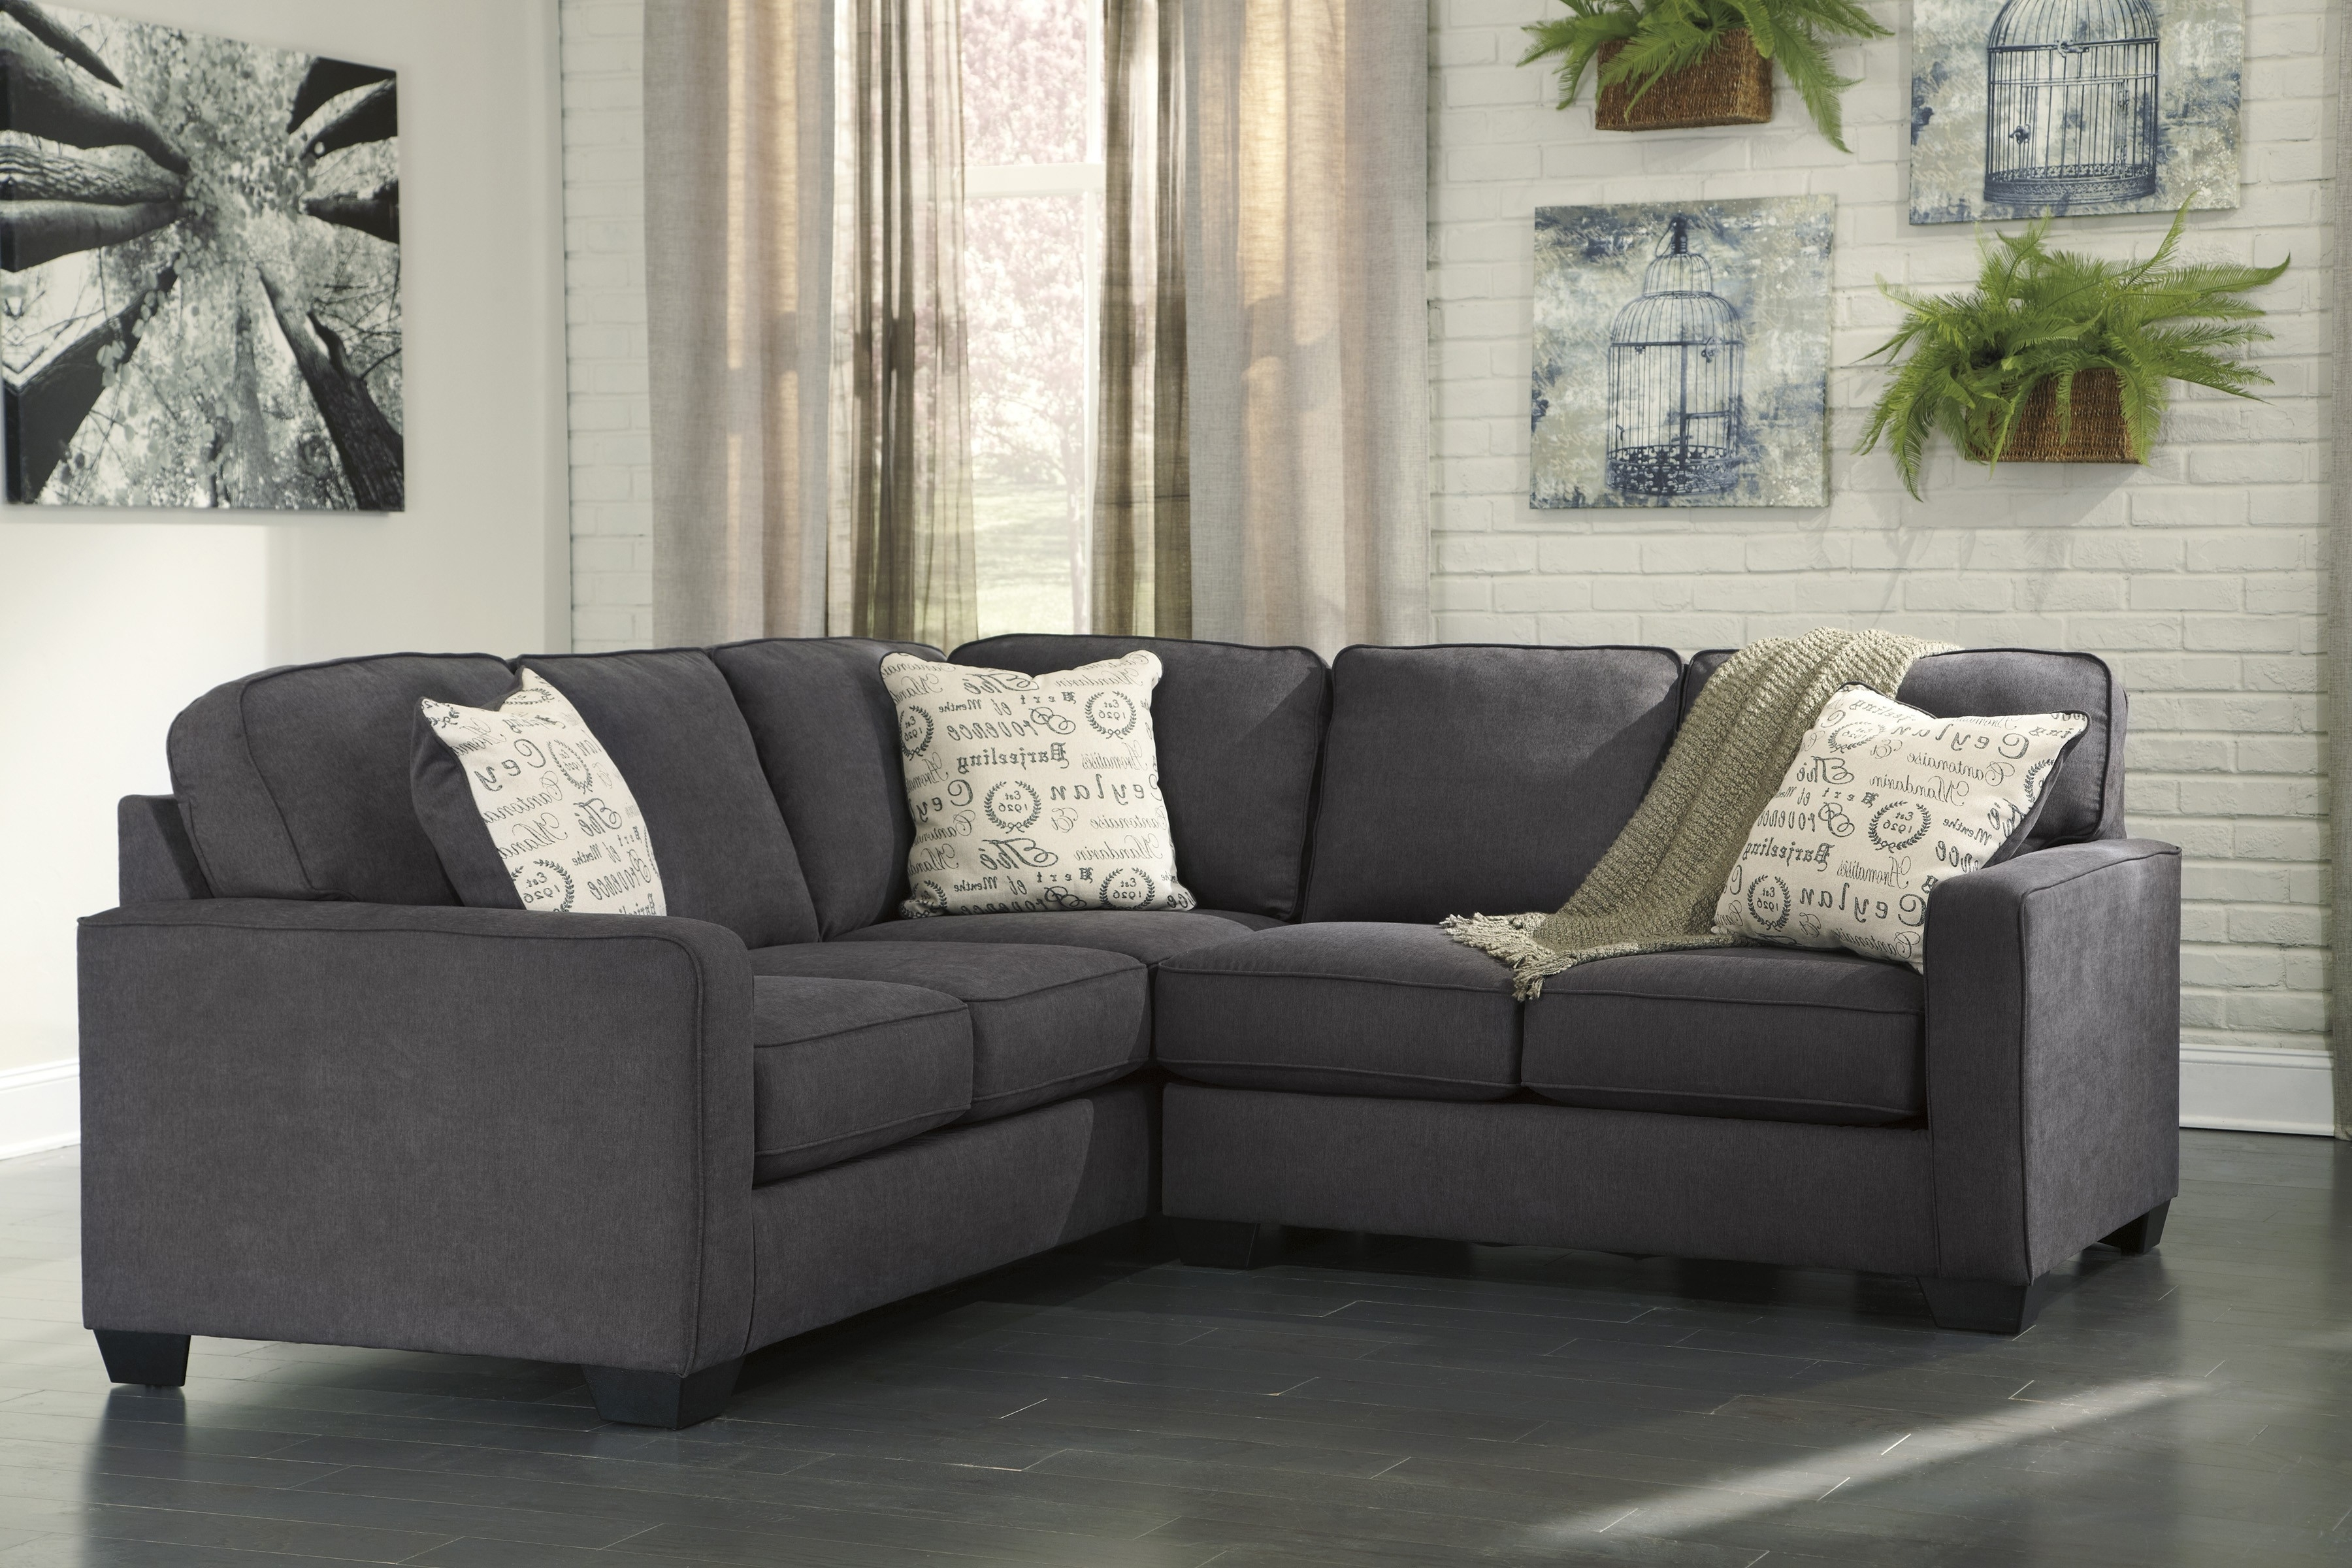 Multi Piece Sectional Sofa – Sofa Designs With Regard To Malbry Point 3 Piece Sectionals With Laf Chaise (View 13 of 25)